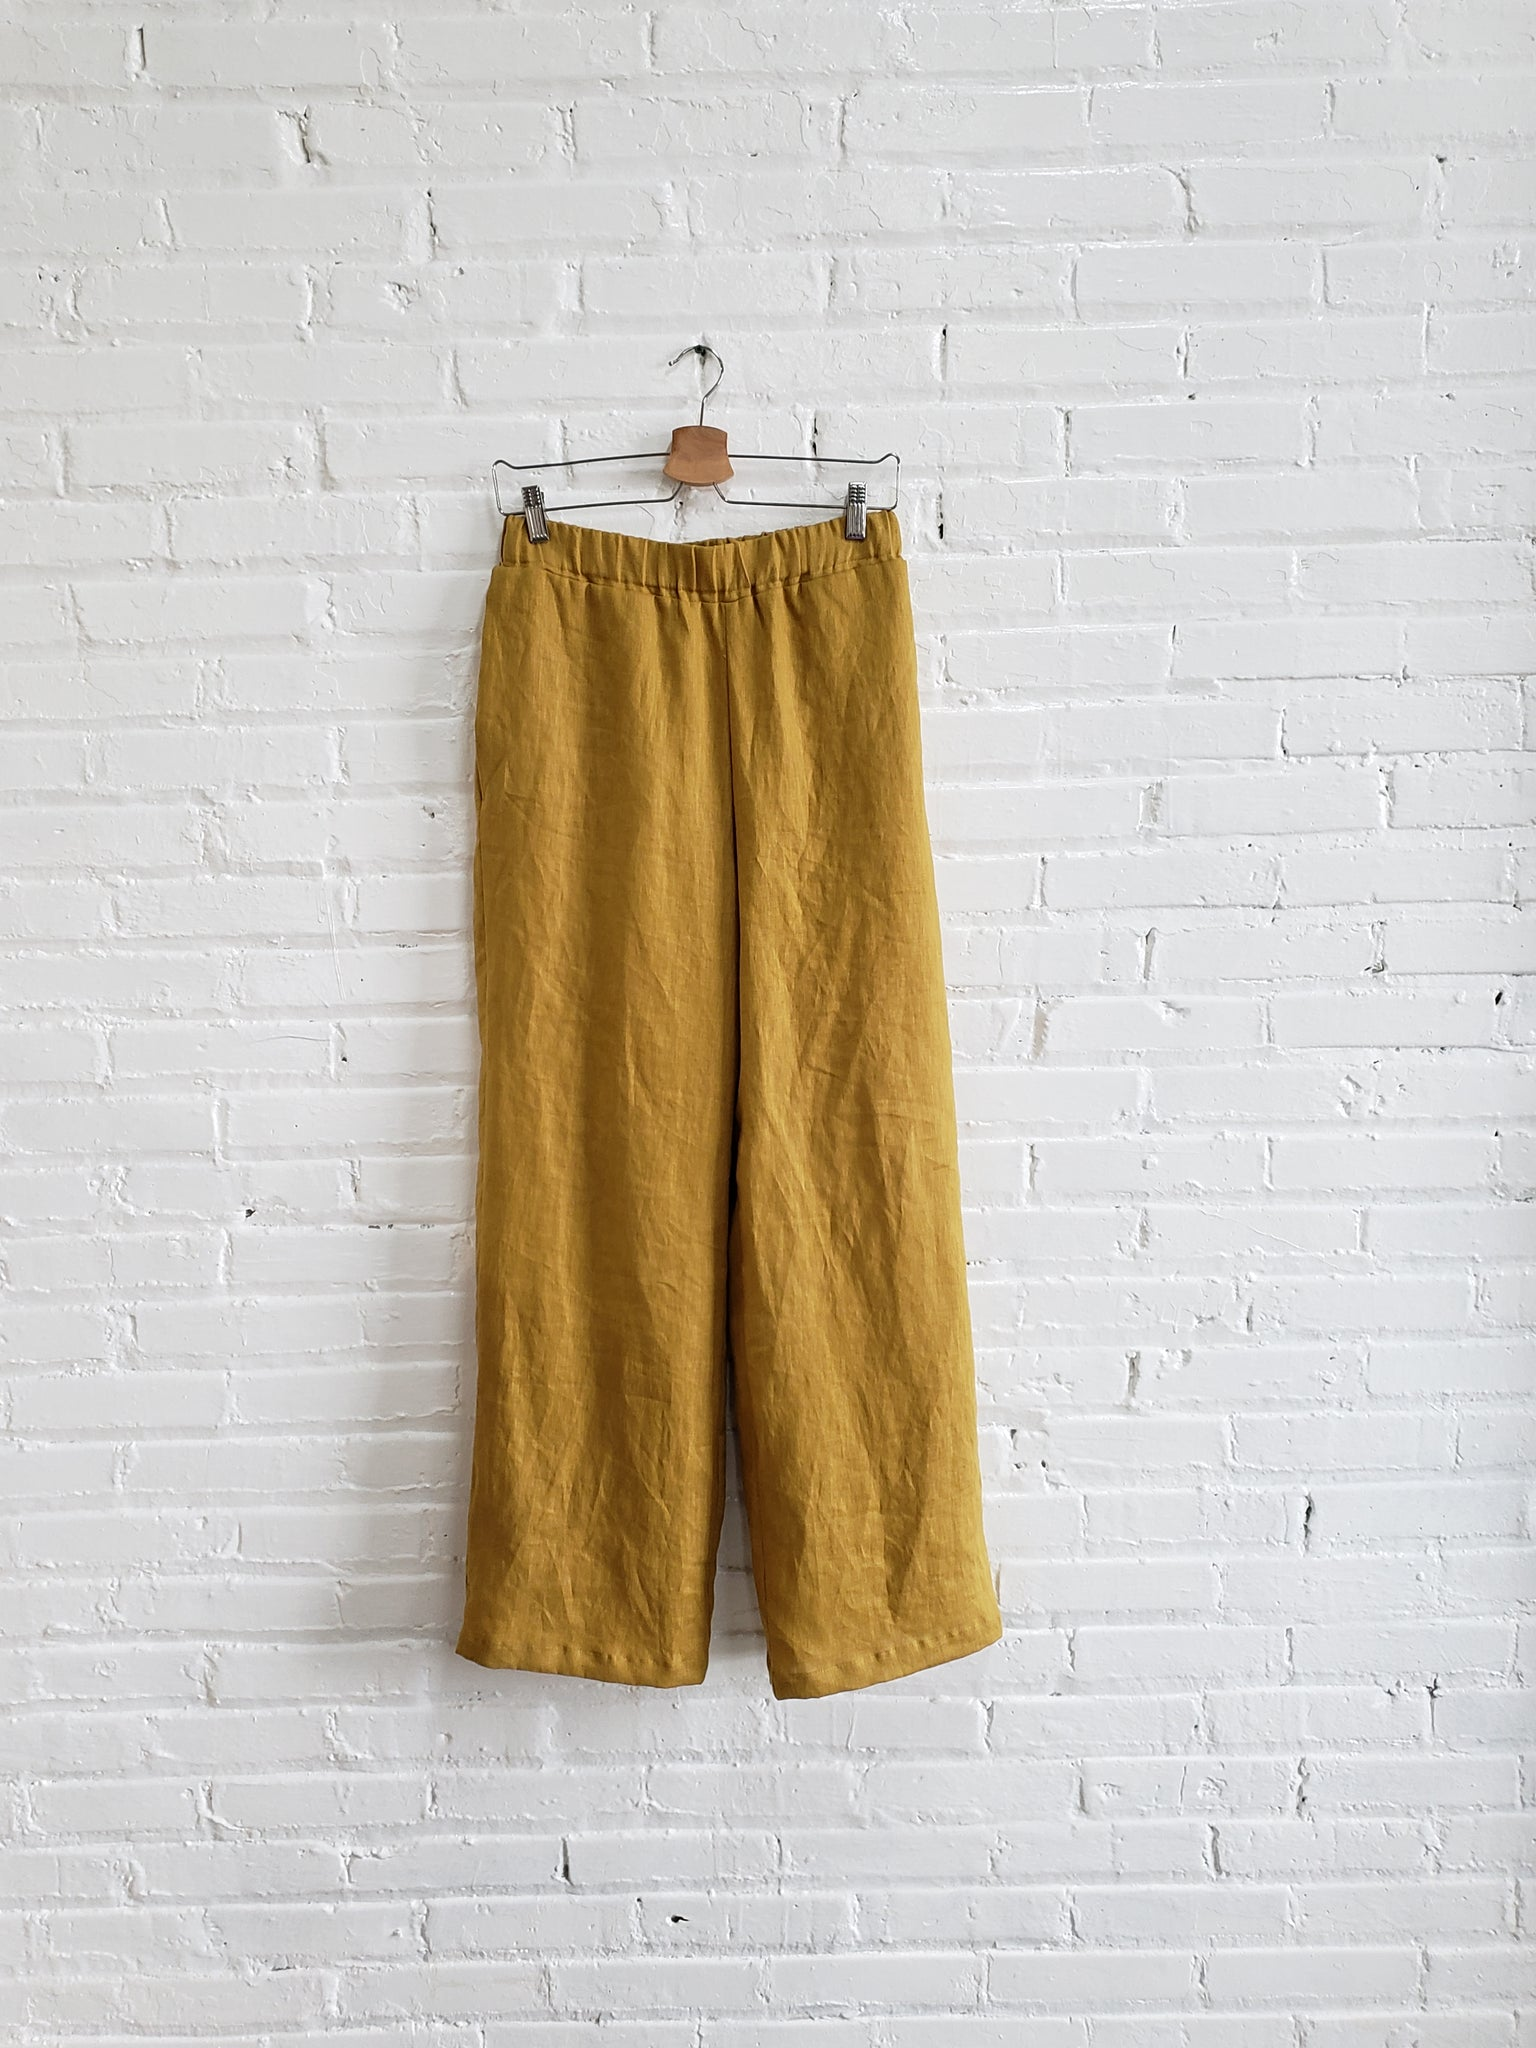 golden yellow linen pants hanging on a white brick wall